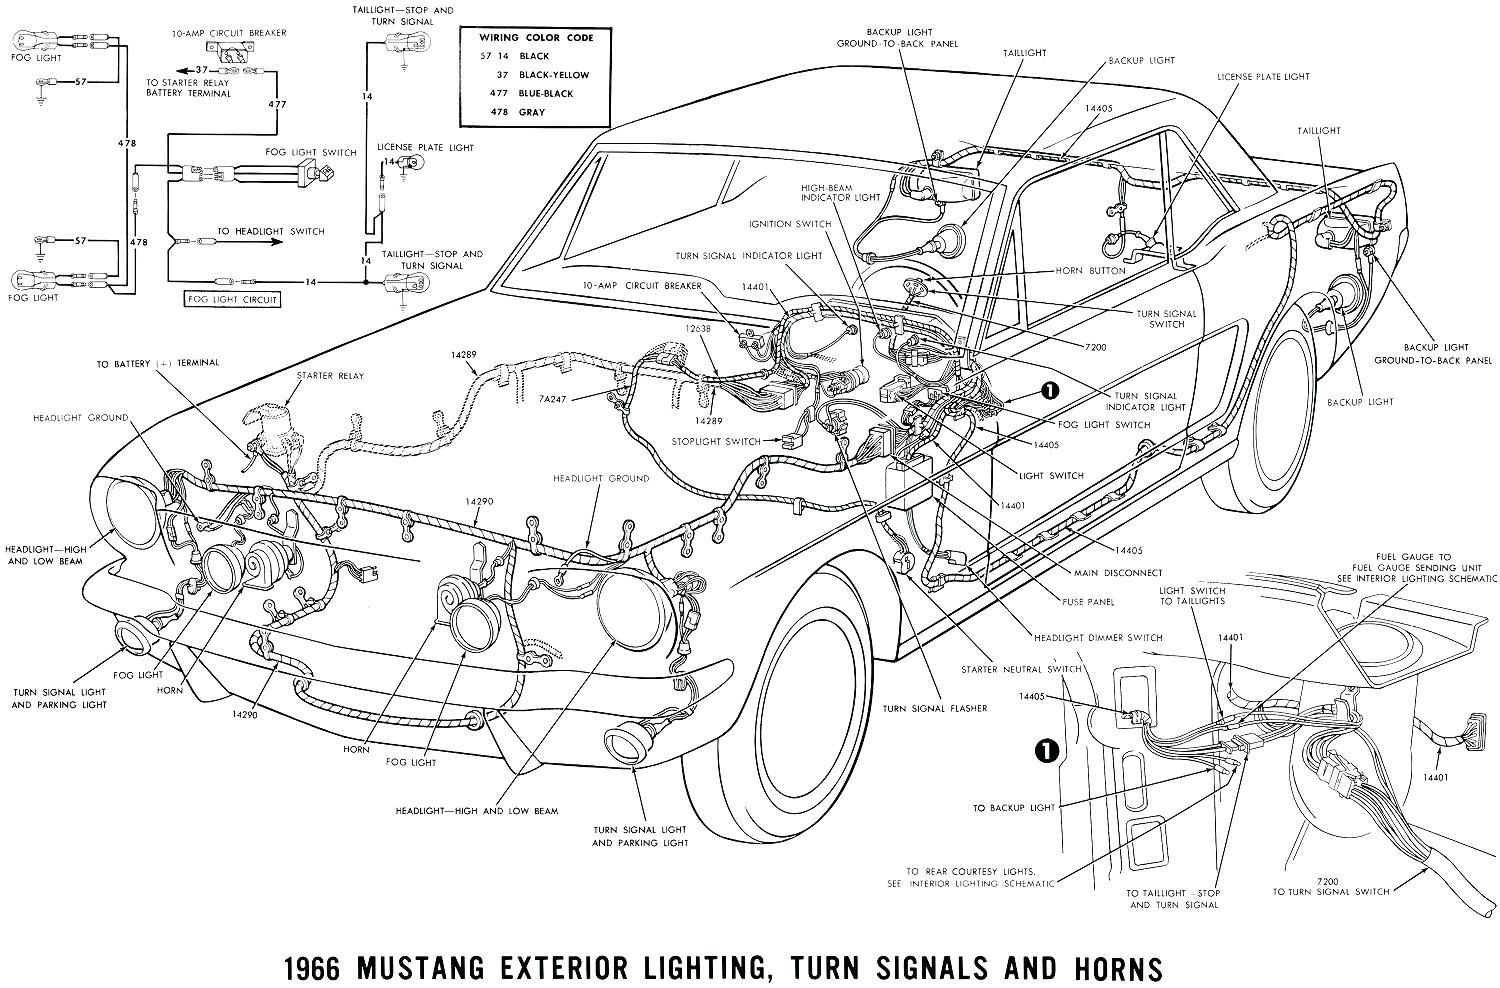 hight resolution of labeled car dashboard diagram mustang exterior lighting turn signalslabeled car dashboard diagram mustang exterior lighting turn